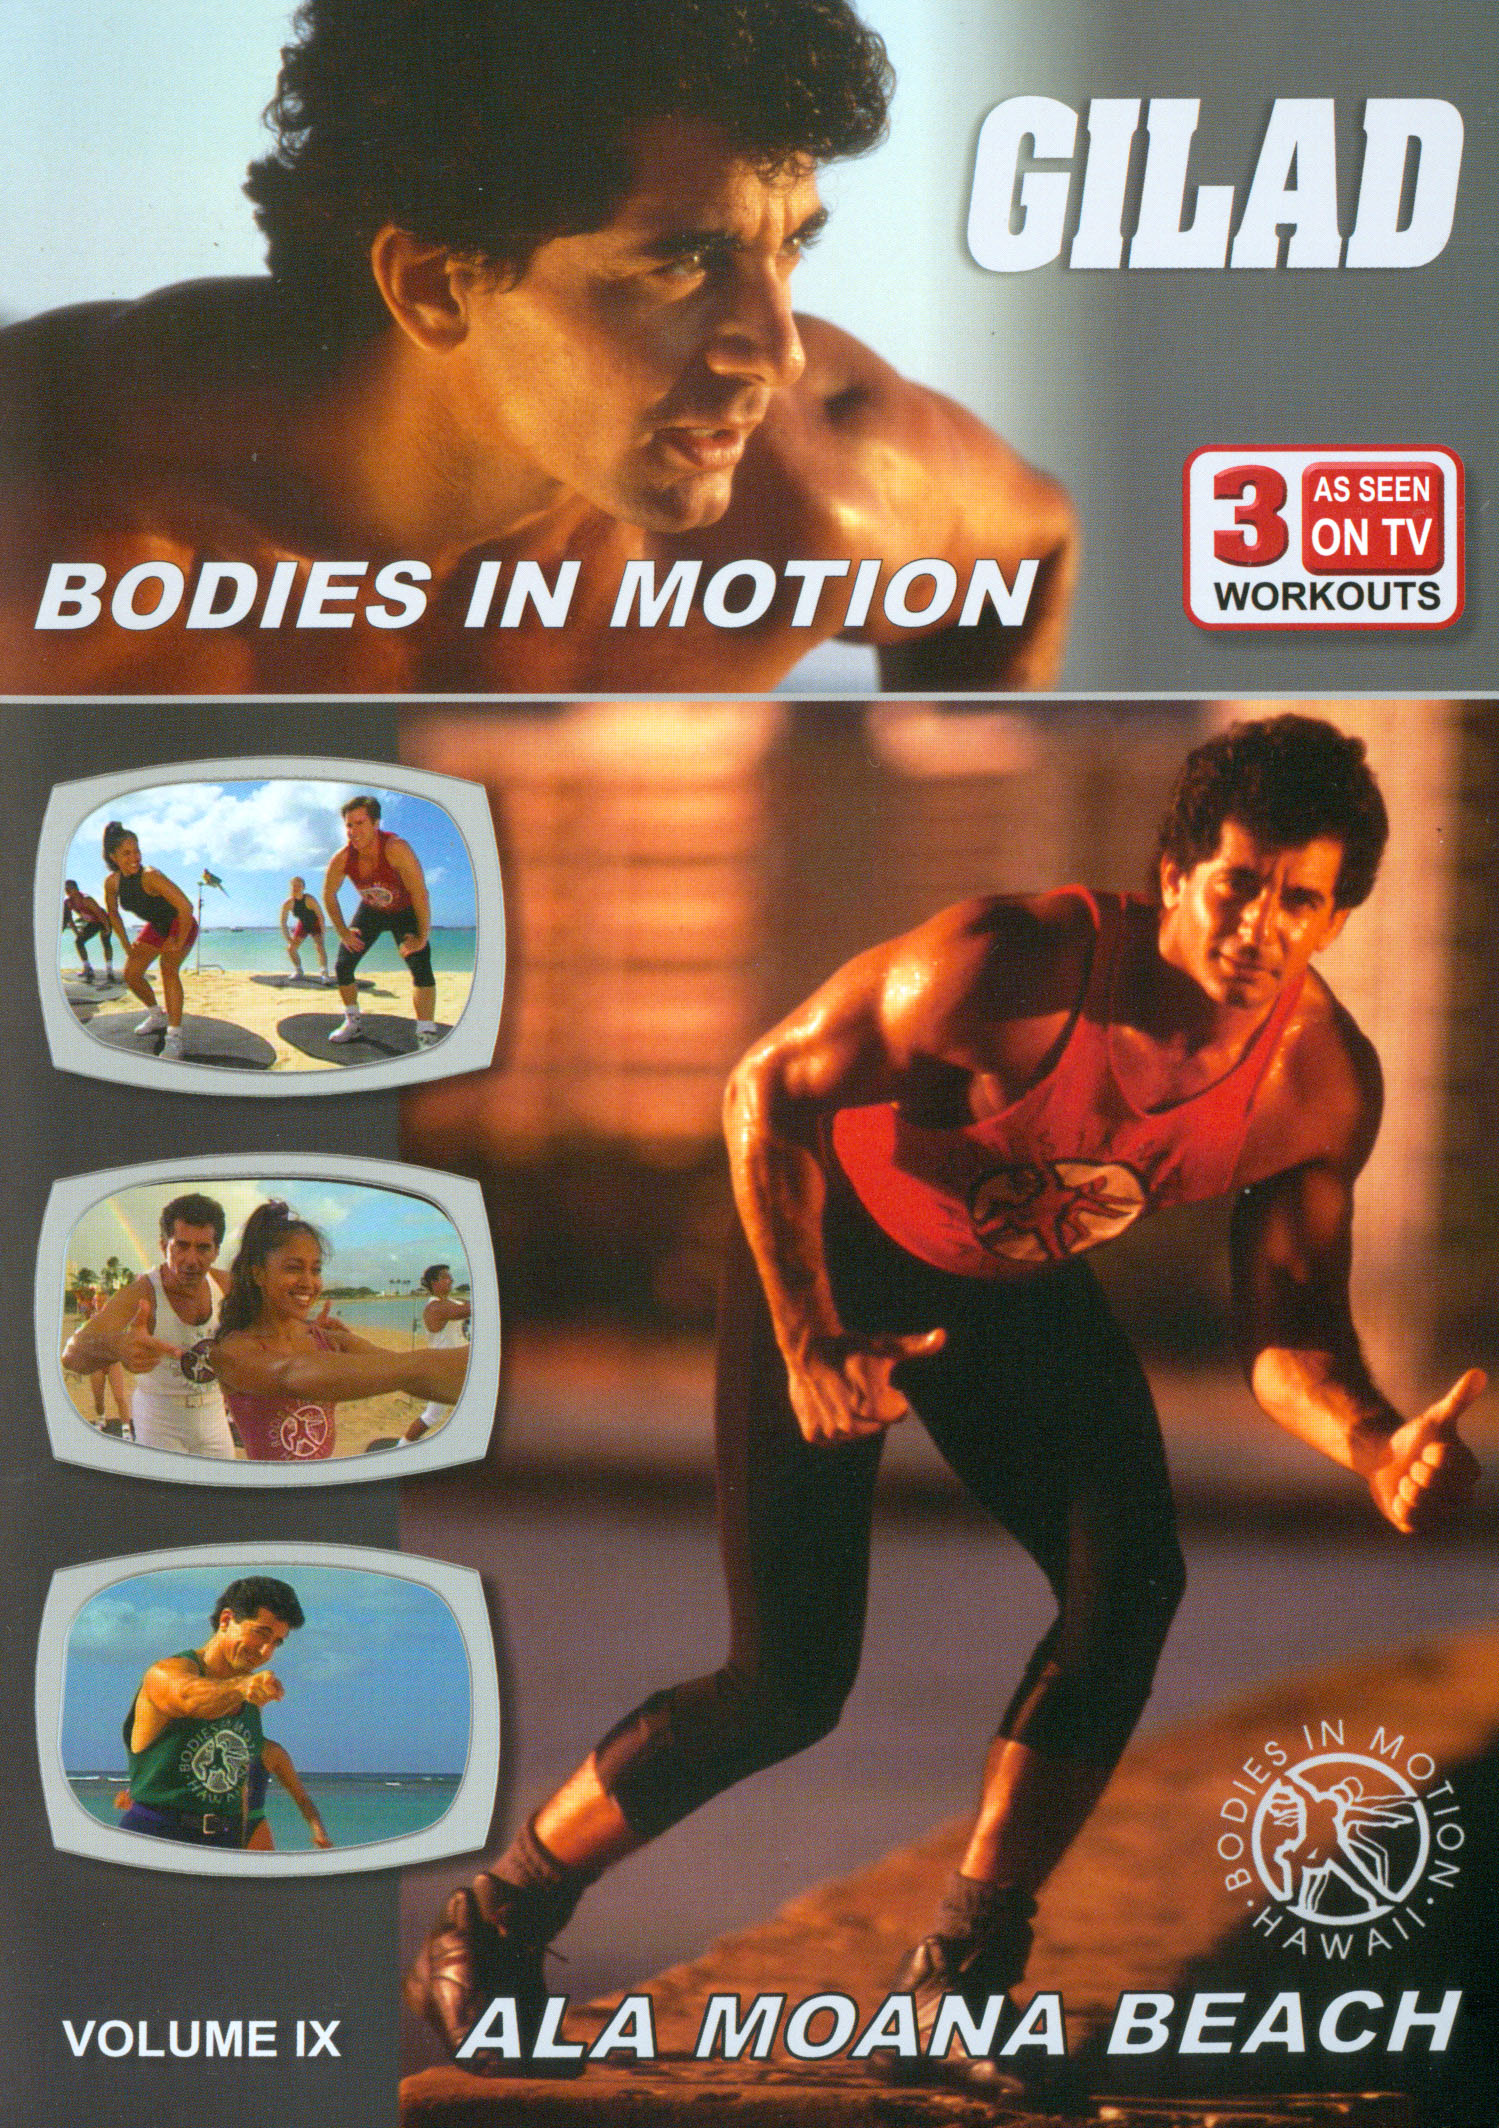 Gilad: Bodies in Motion, Vol. 9 - Ala Moana Beach